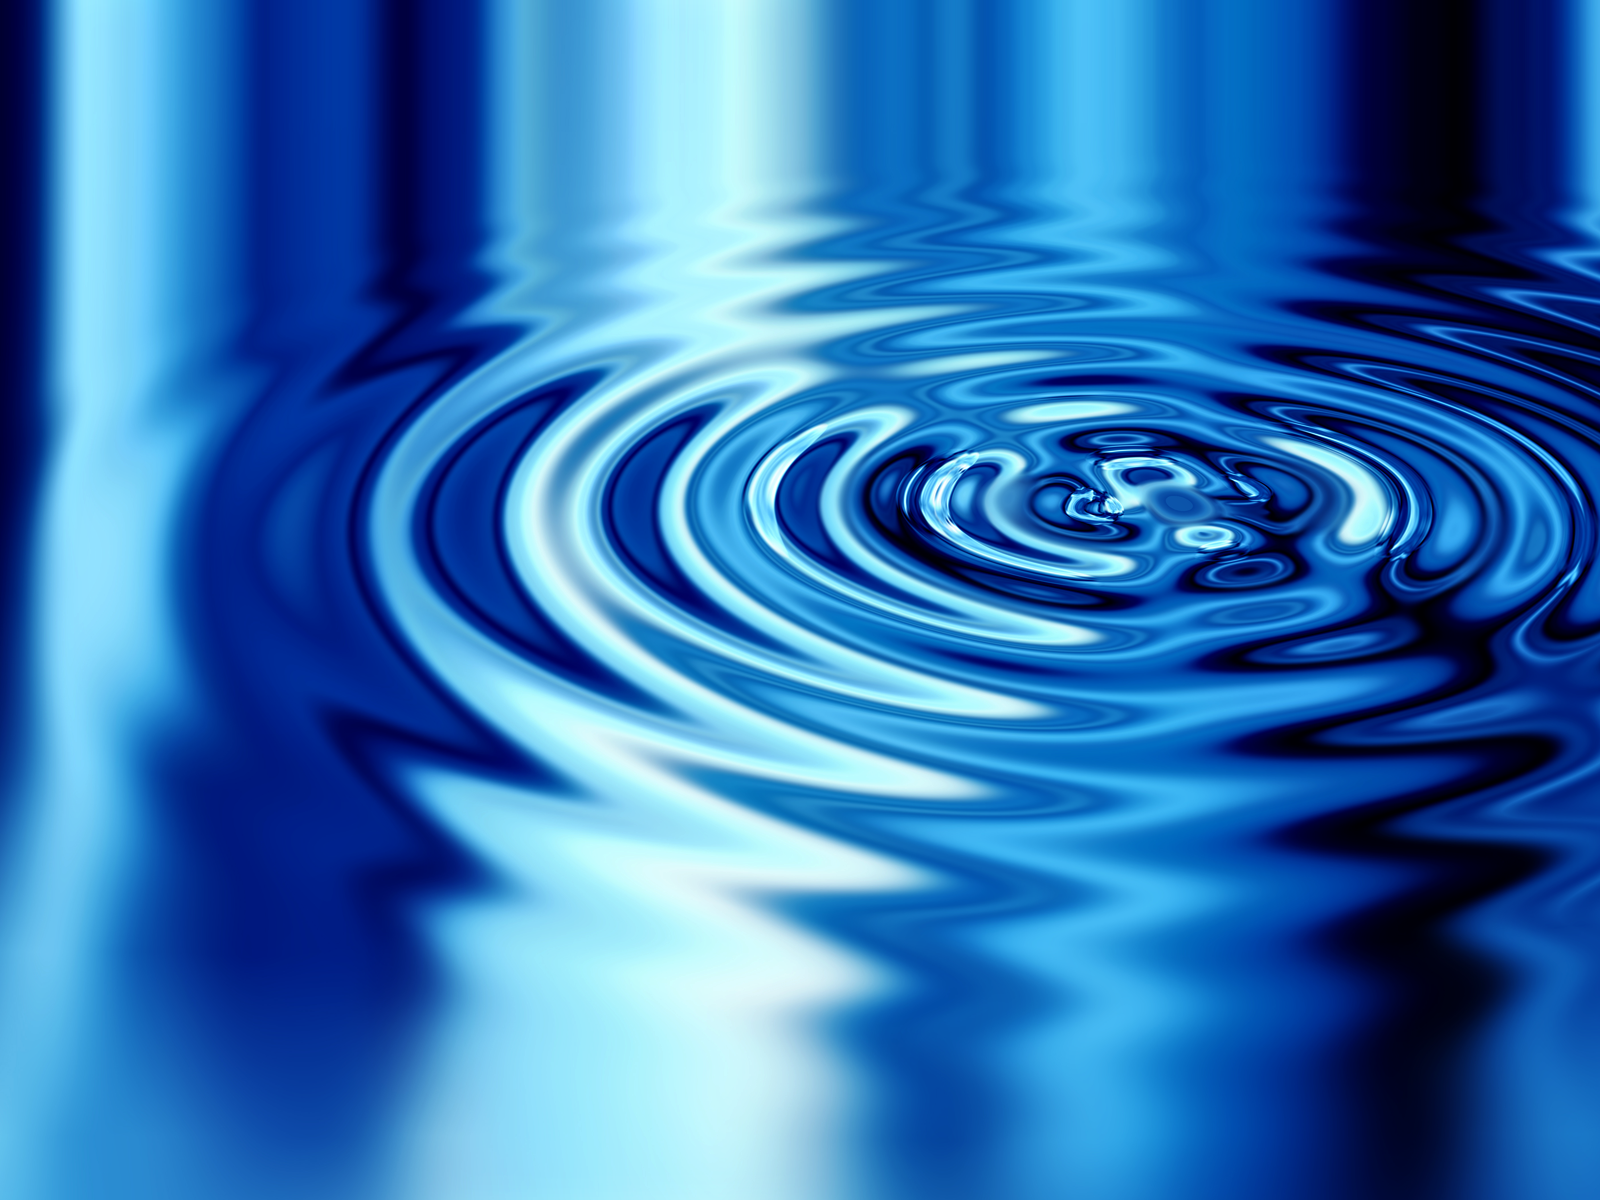 Cool Ripples Wallpaper